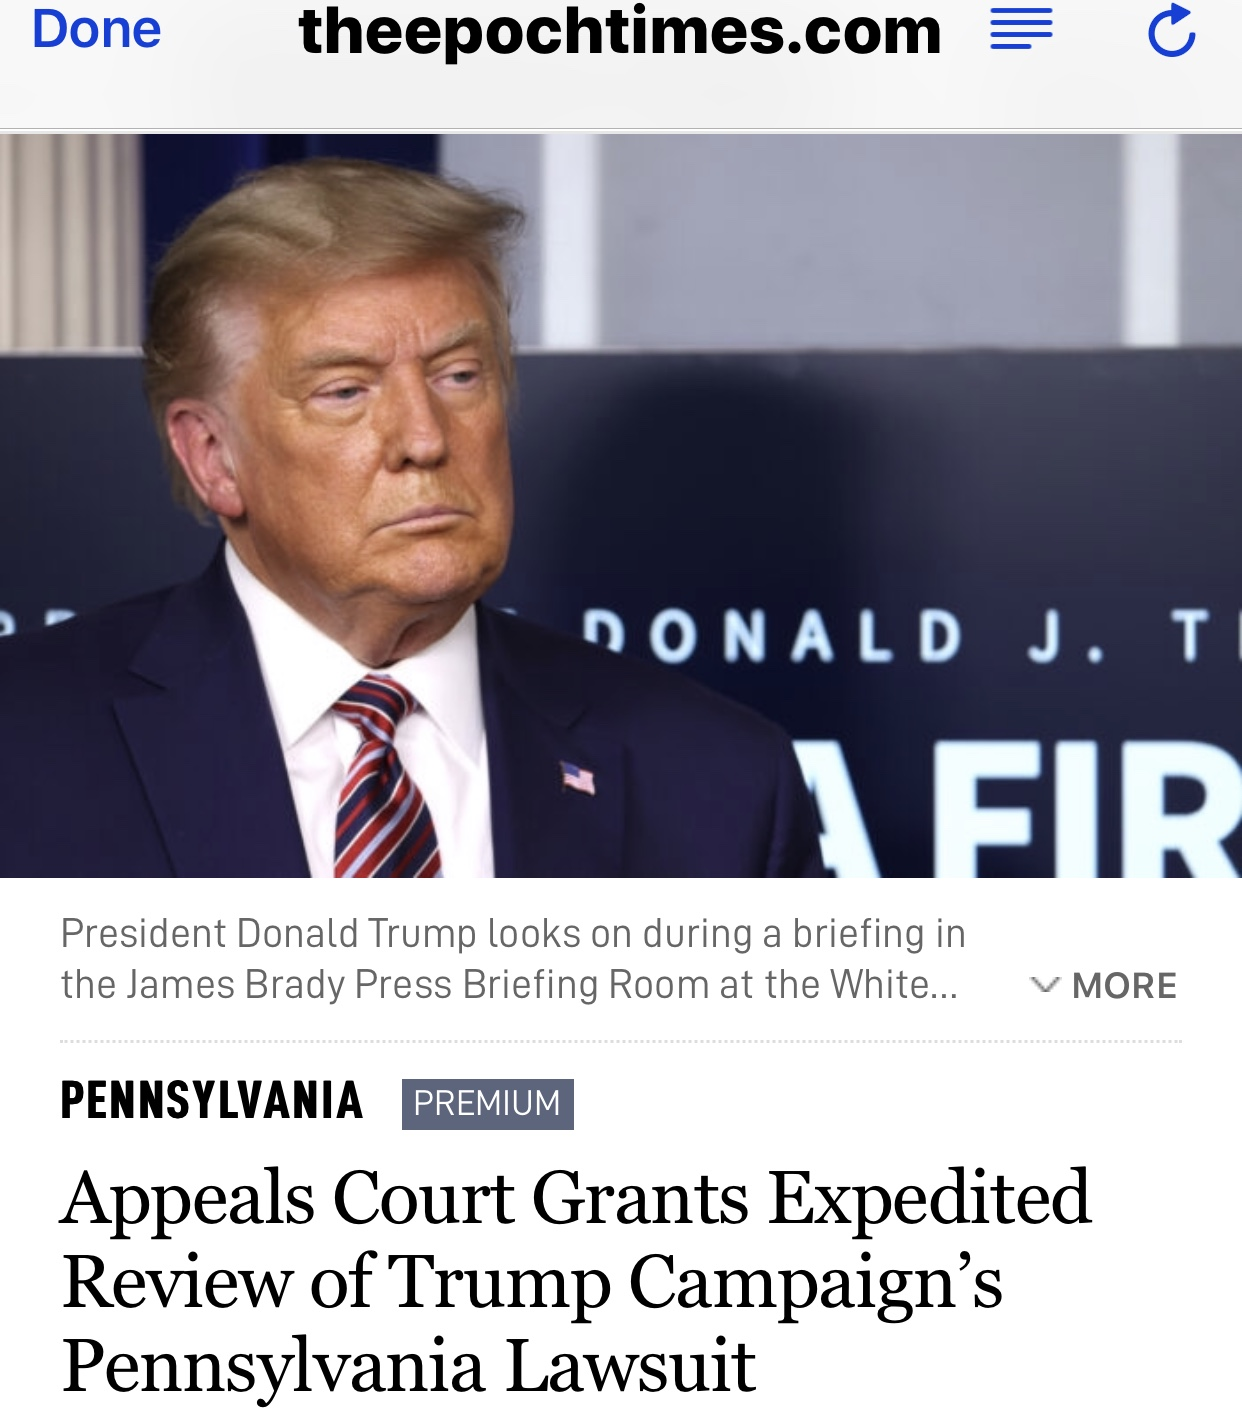 Appeals Court Grants Expedited Review of Trump Campaign's Pennsylvania Lawsuit